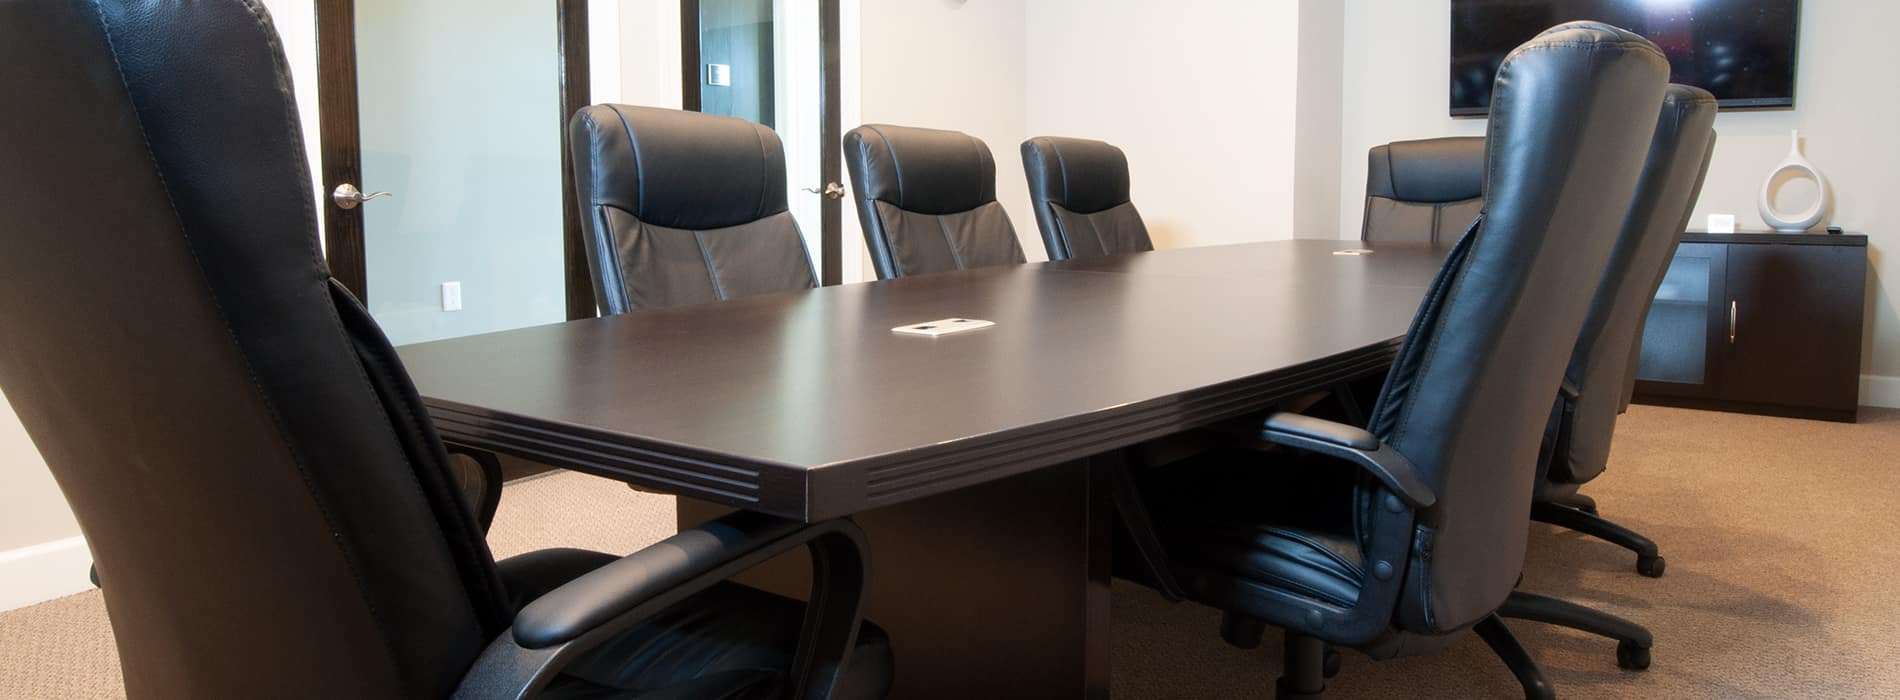 Rent This Conference Room